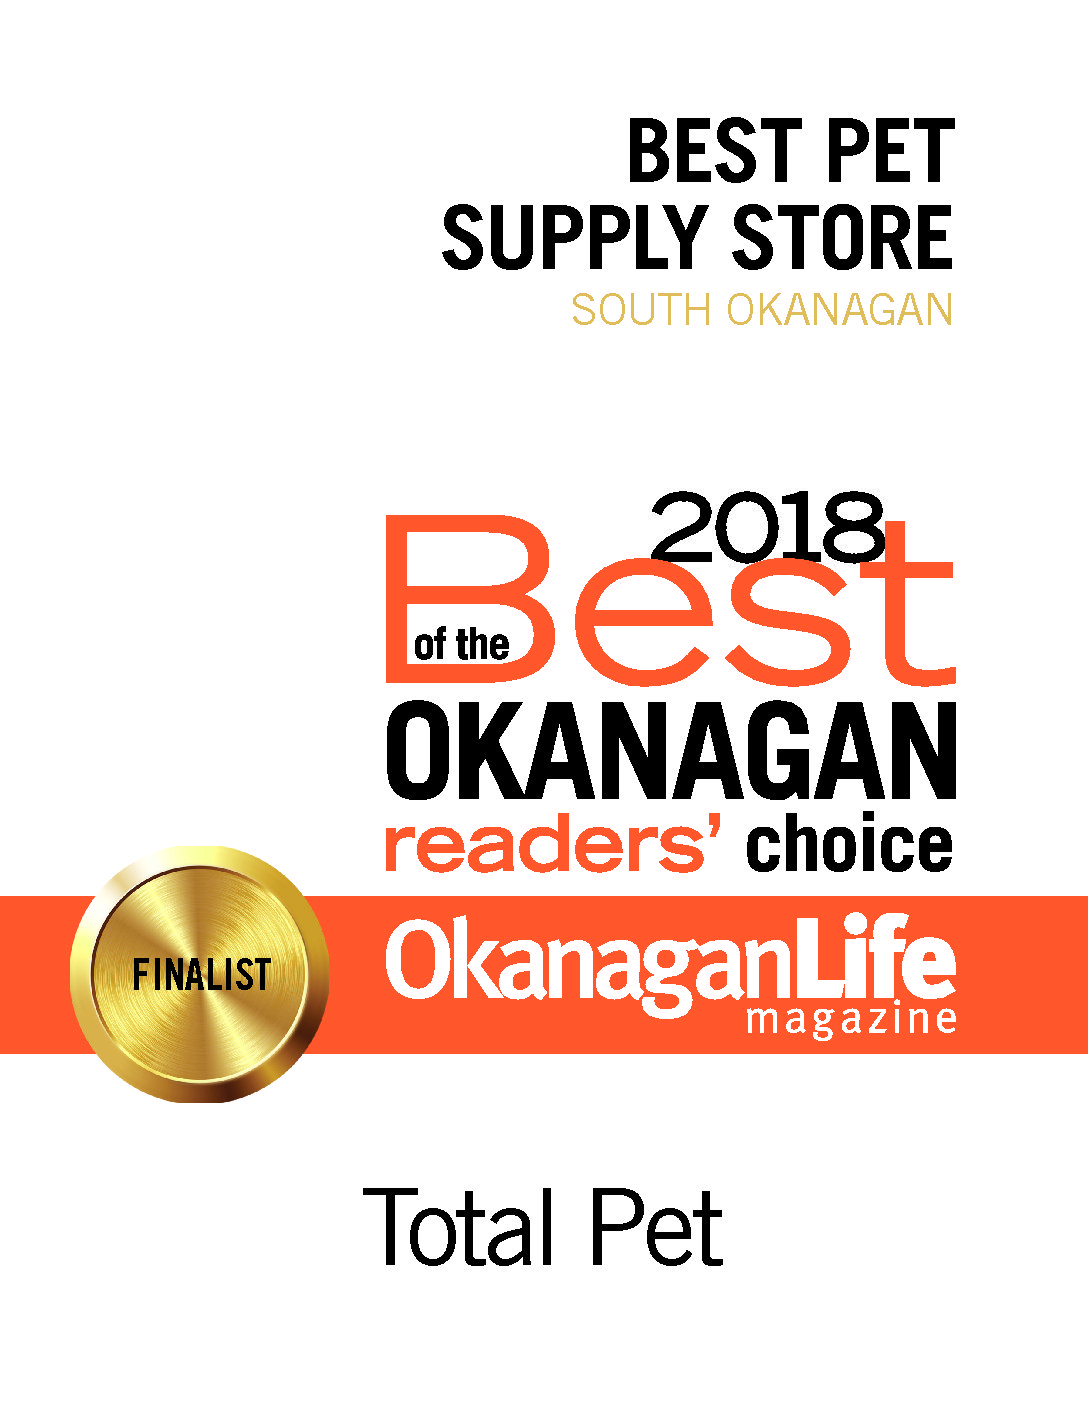 Total Pet – Penticton